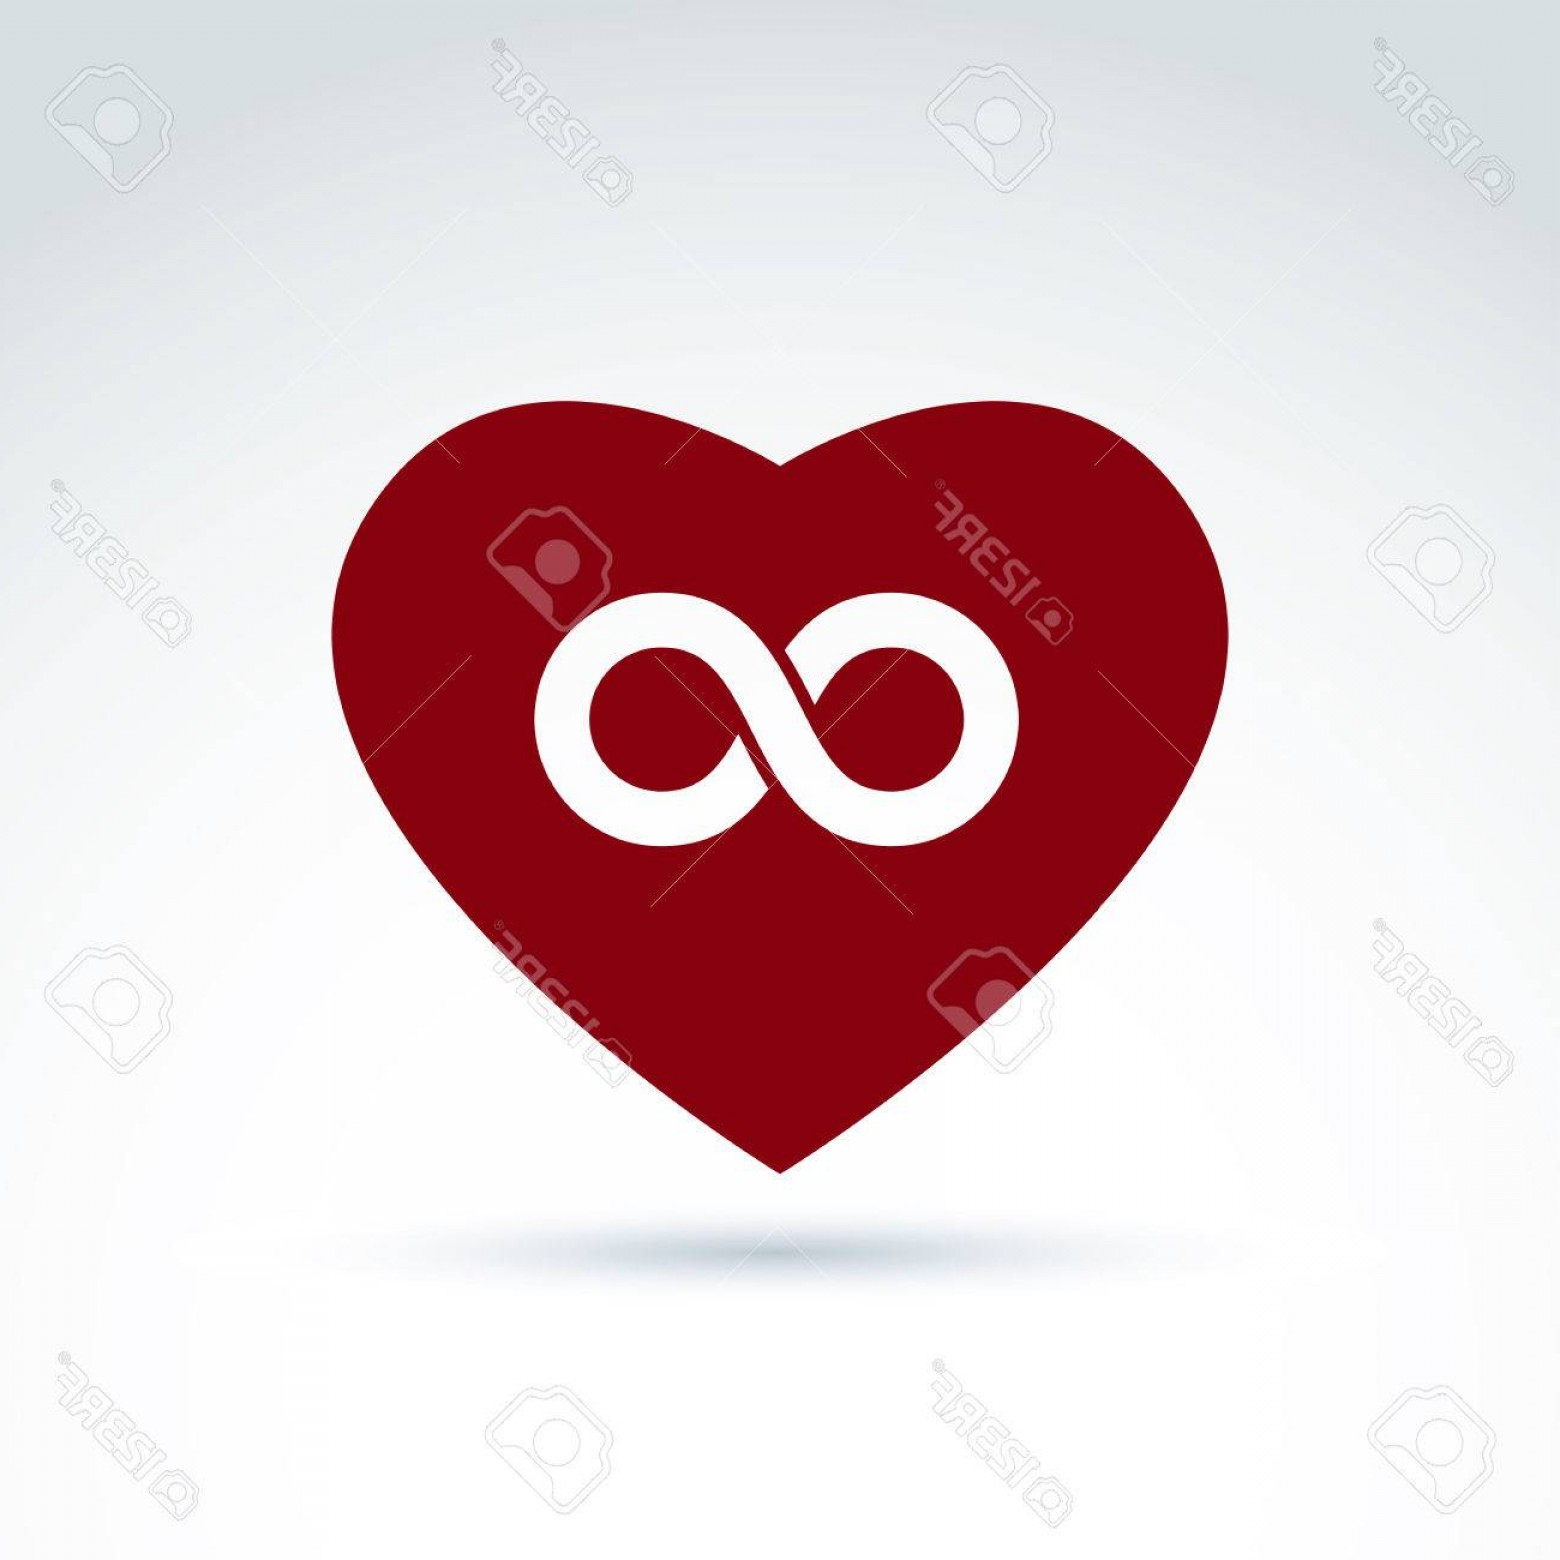 Vector Infinity Symbol Hearts: Photostock Vector Vector Infinity Icon Eternal Life Idea Illustration Of An Eternity Symbol Placed On A Red Heart Love